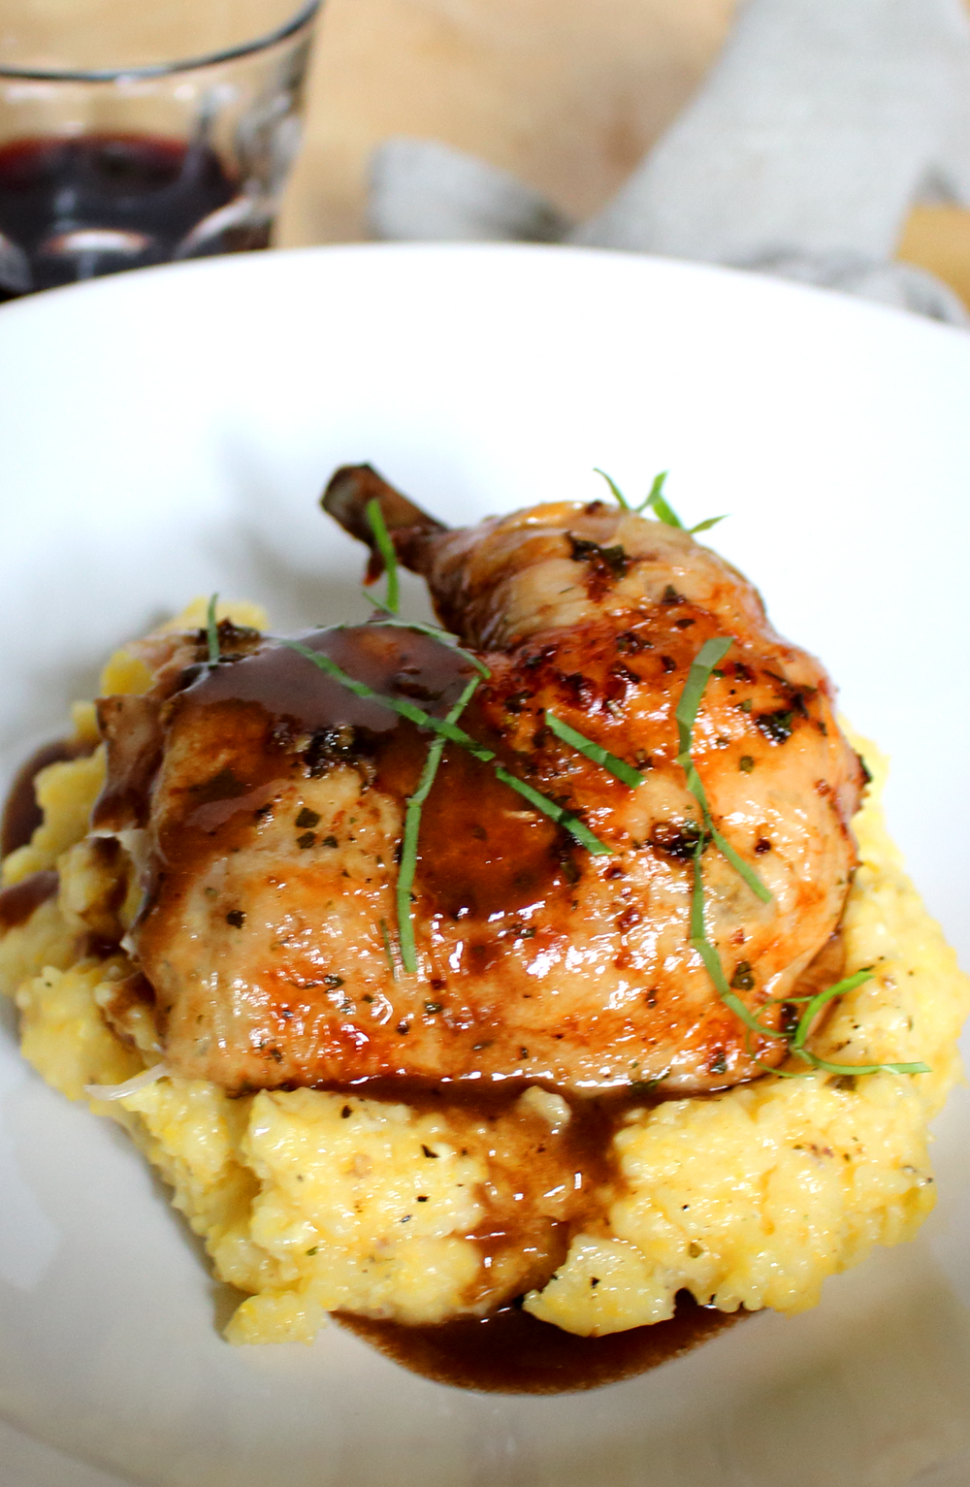 Roast Chicken with Red Wine Demi-Glace and Polenta - Dinner Recipes Gourmet